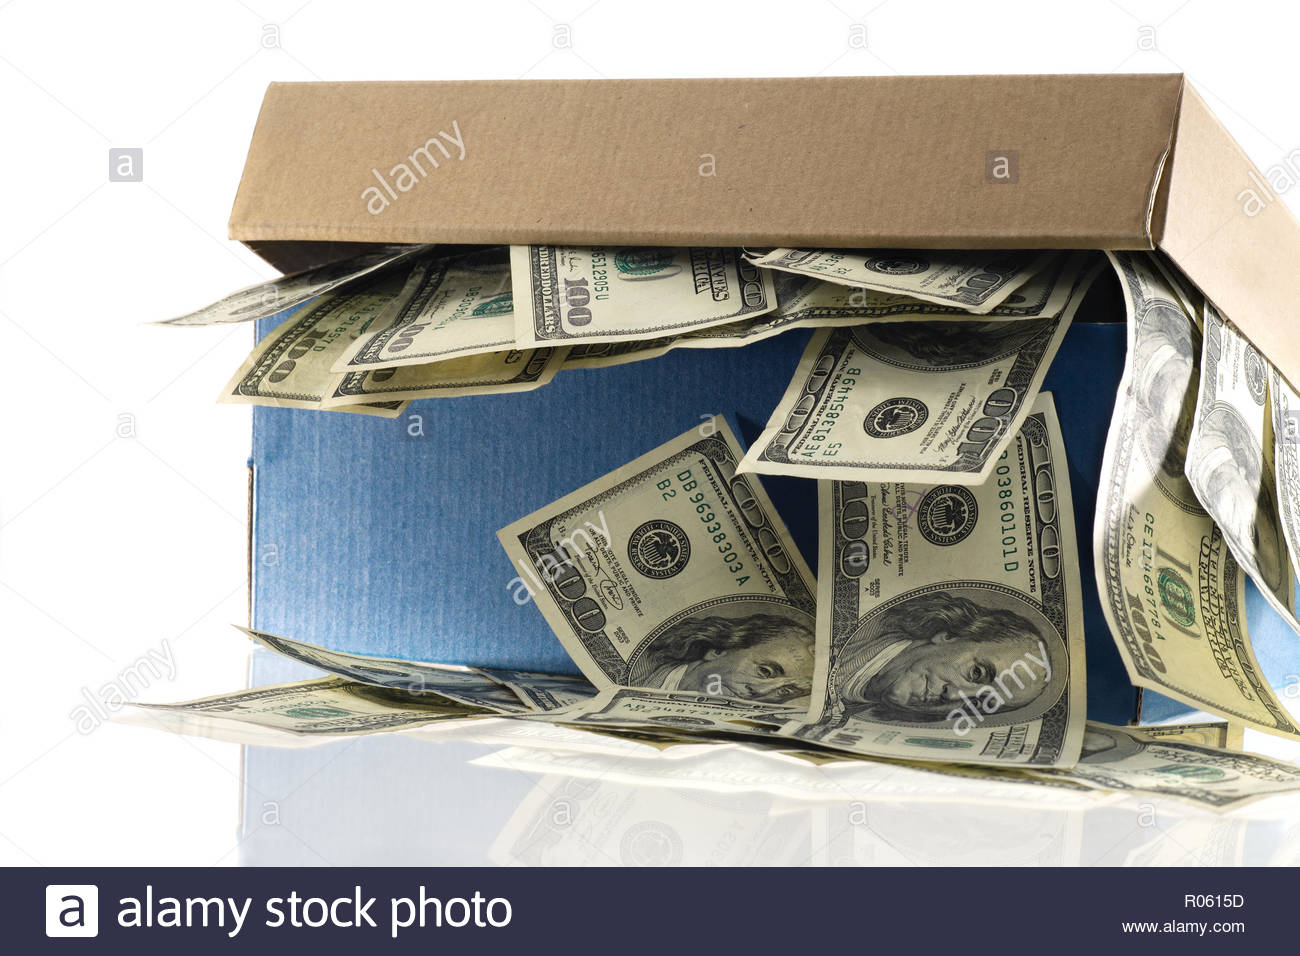 Shoebox Full Of Money.Savings In A Shoebox Rather Than A Secure Banking System